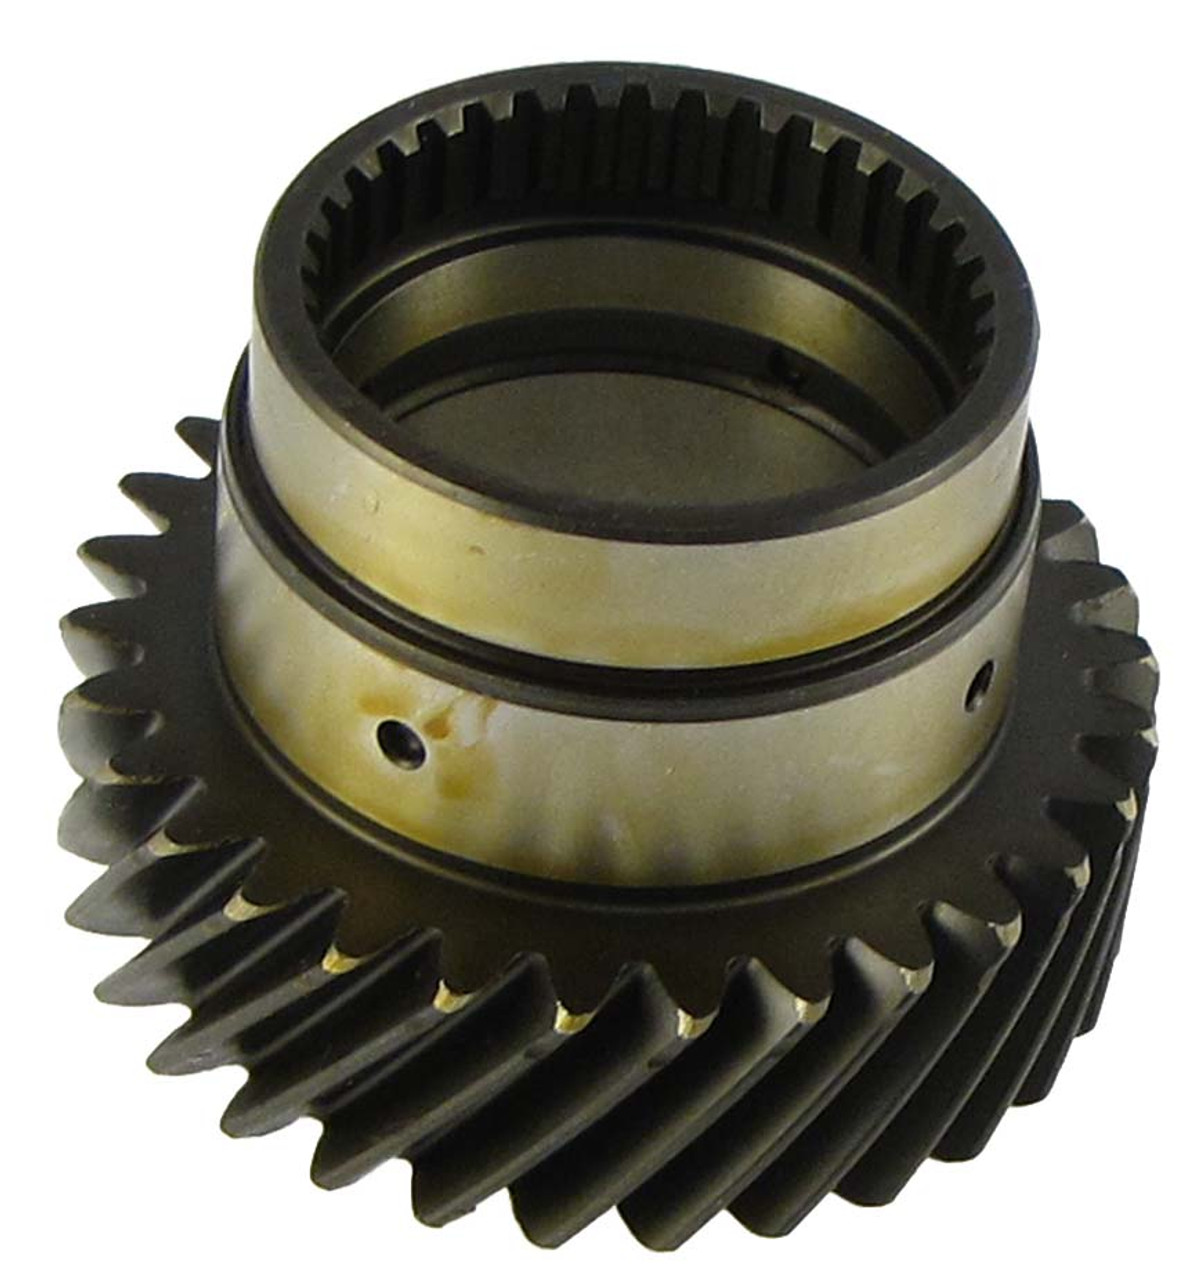 Low Gear For Honda 5 Speed Automatic 23411-P7W-000 04014